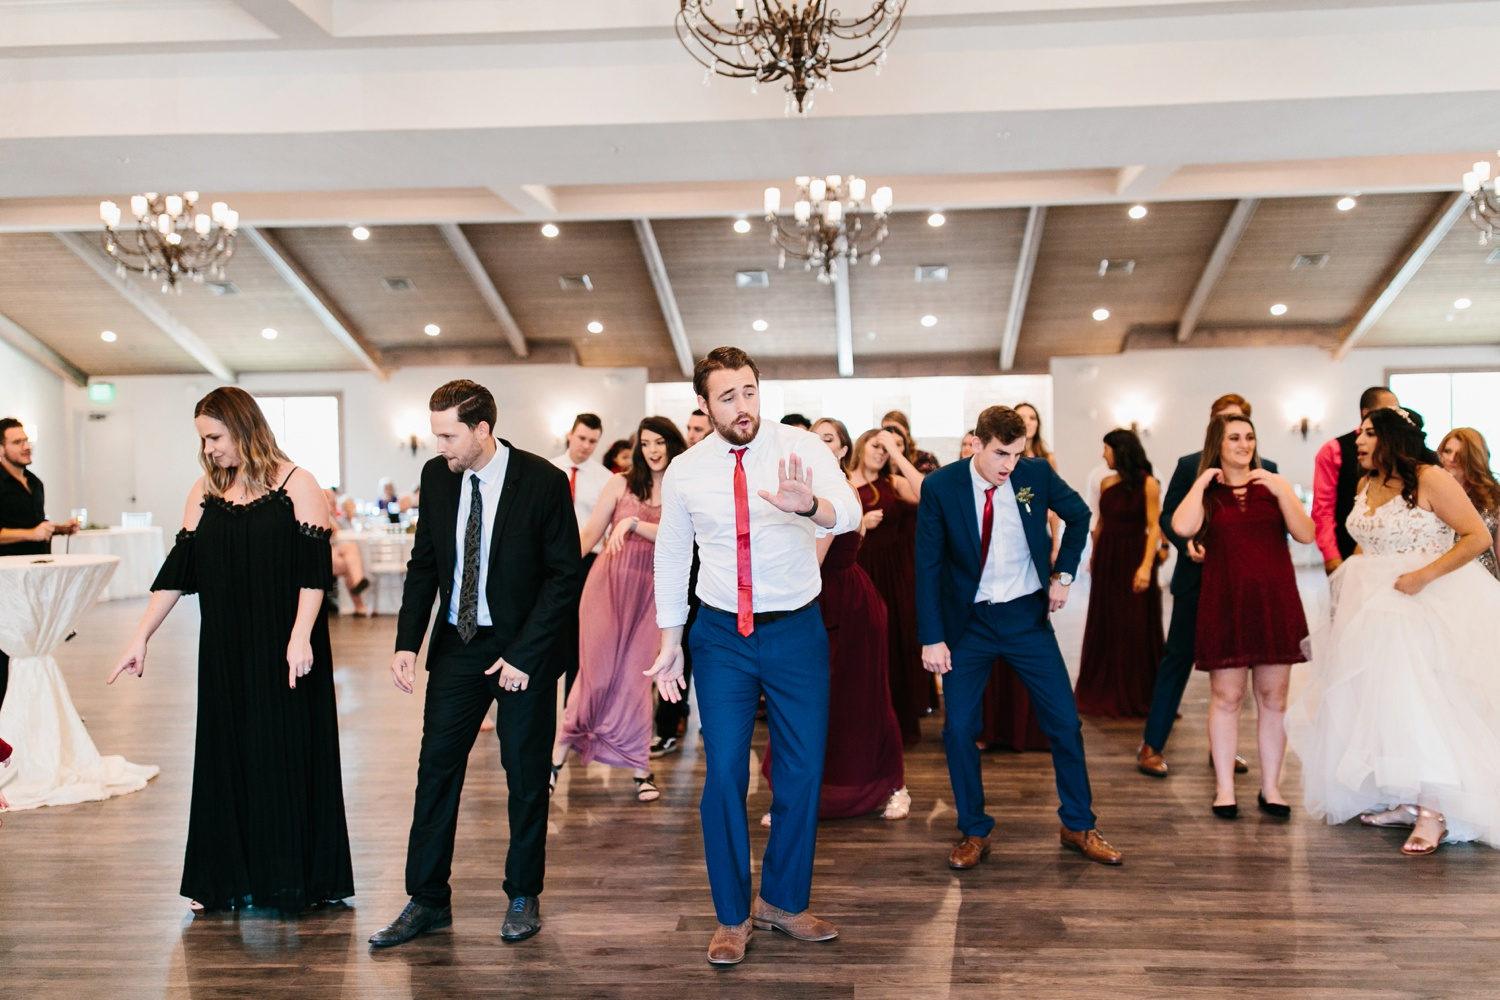 Grant + Lysette | a vibrant, deep burgundy and navy, and mixed metals wedding at Hidden Pines Chapel by North Texas Wedding Photographer Rachel Meagan Photography 180